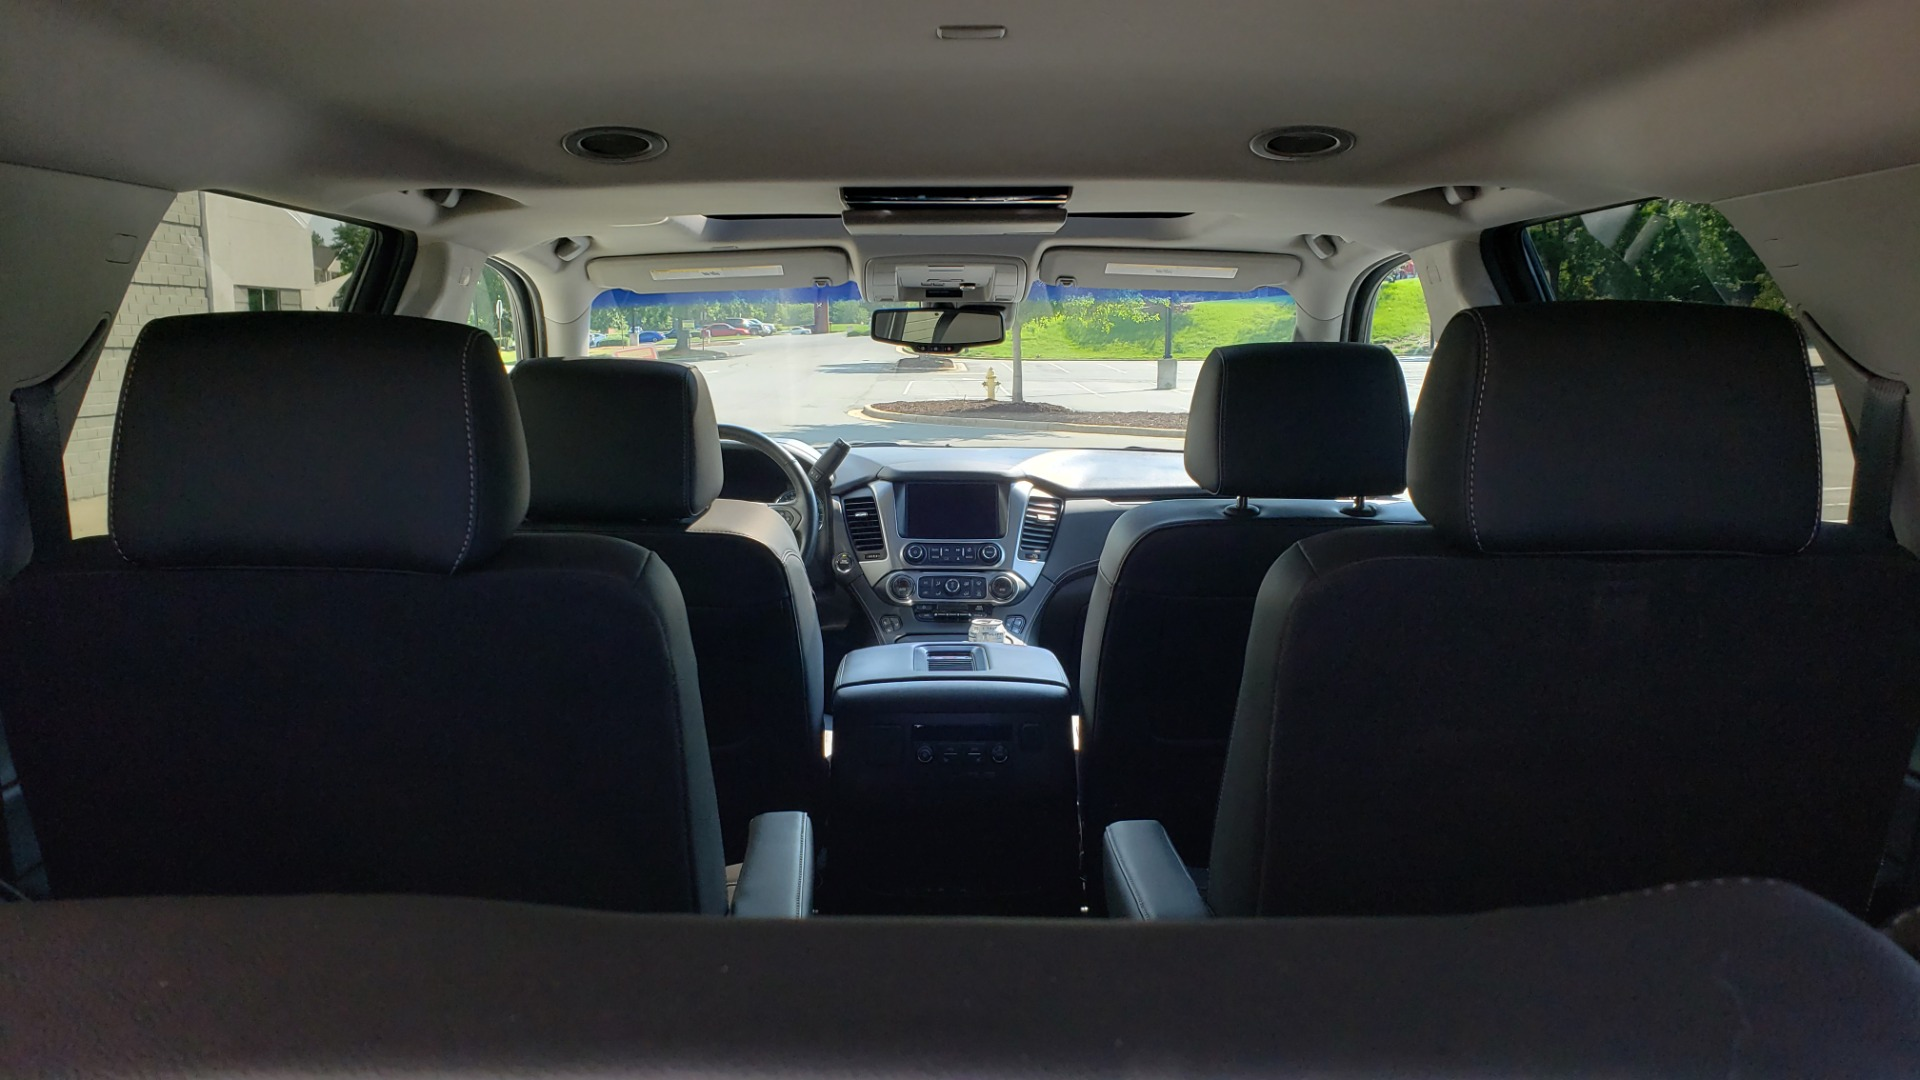 Used 2018 Chevrolet TAHOE PREMIER RST / 4X4 / NAV / BOSE / SUNROOF / 3-ROW / REARVIEW for sale $65,995 at Formula Imports in Charlotte NC 28227 36